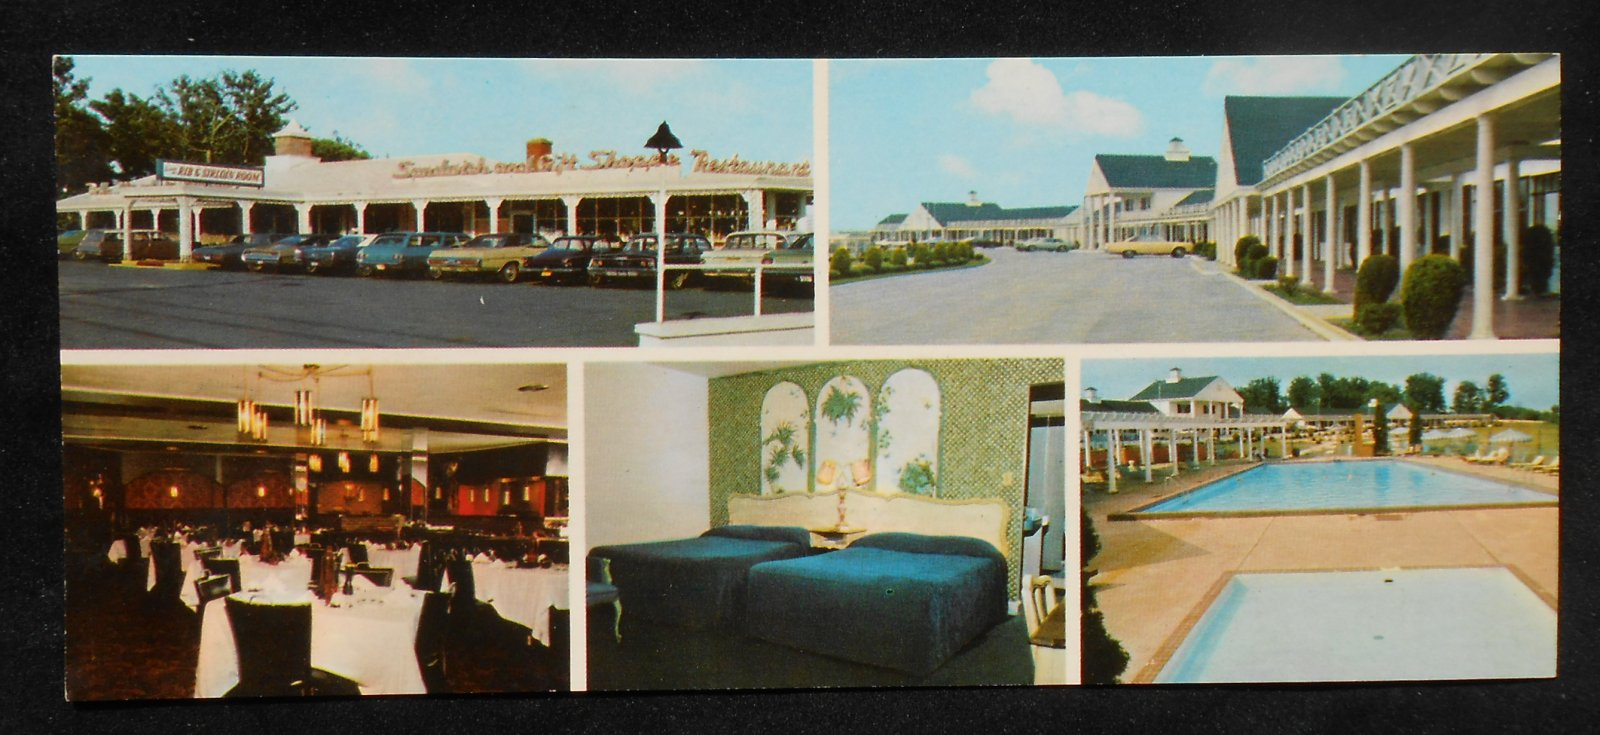 1970s Extra Long Belle Meade Red Carpet Inn I 81 Old Cars